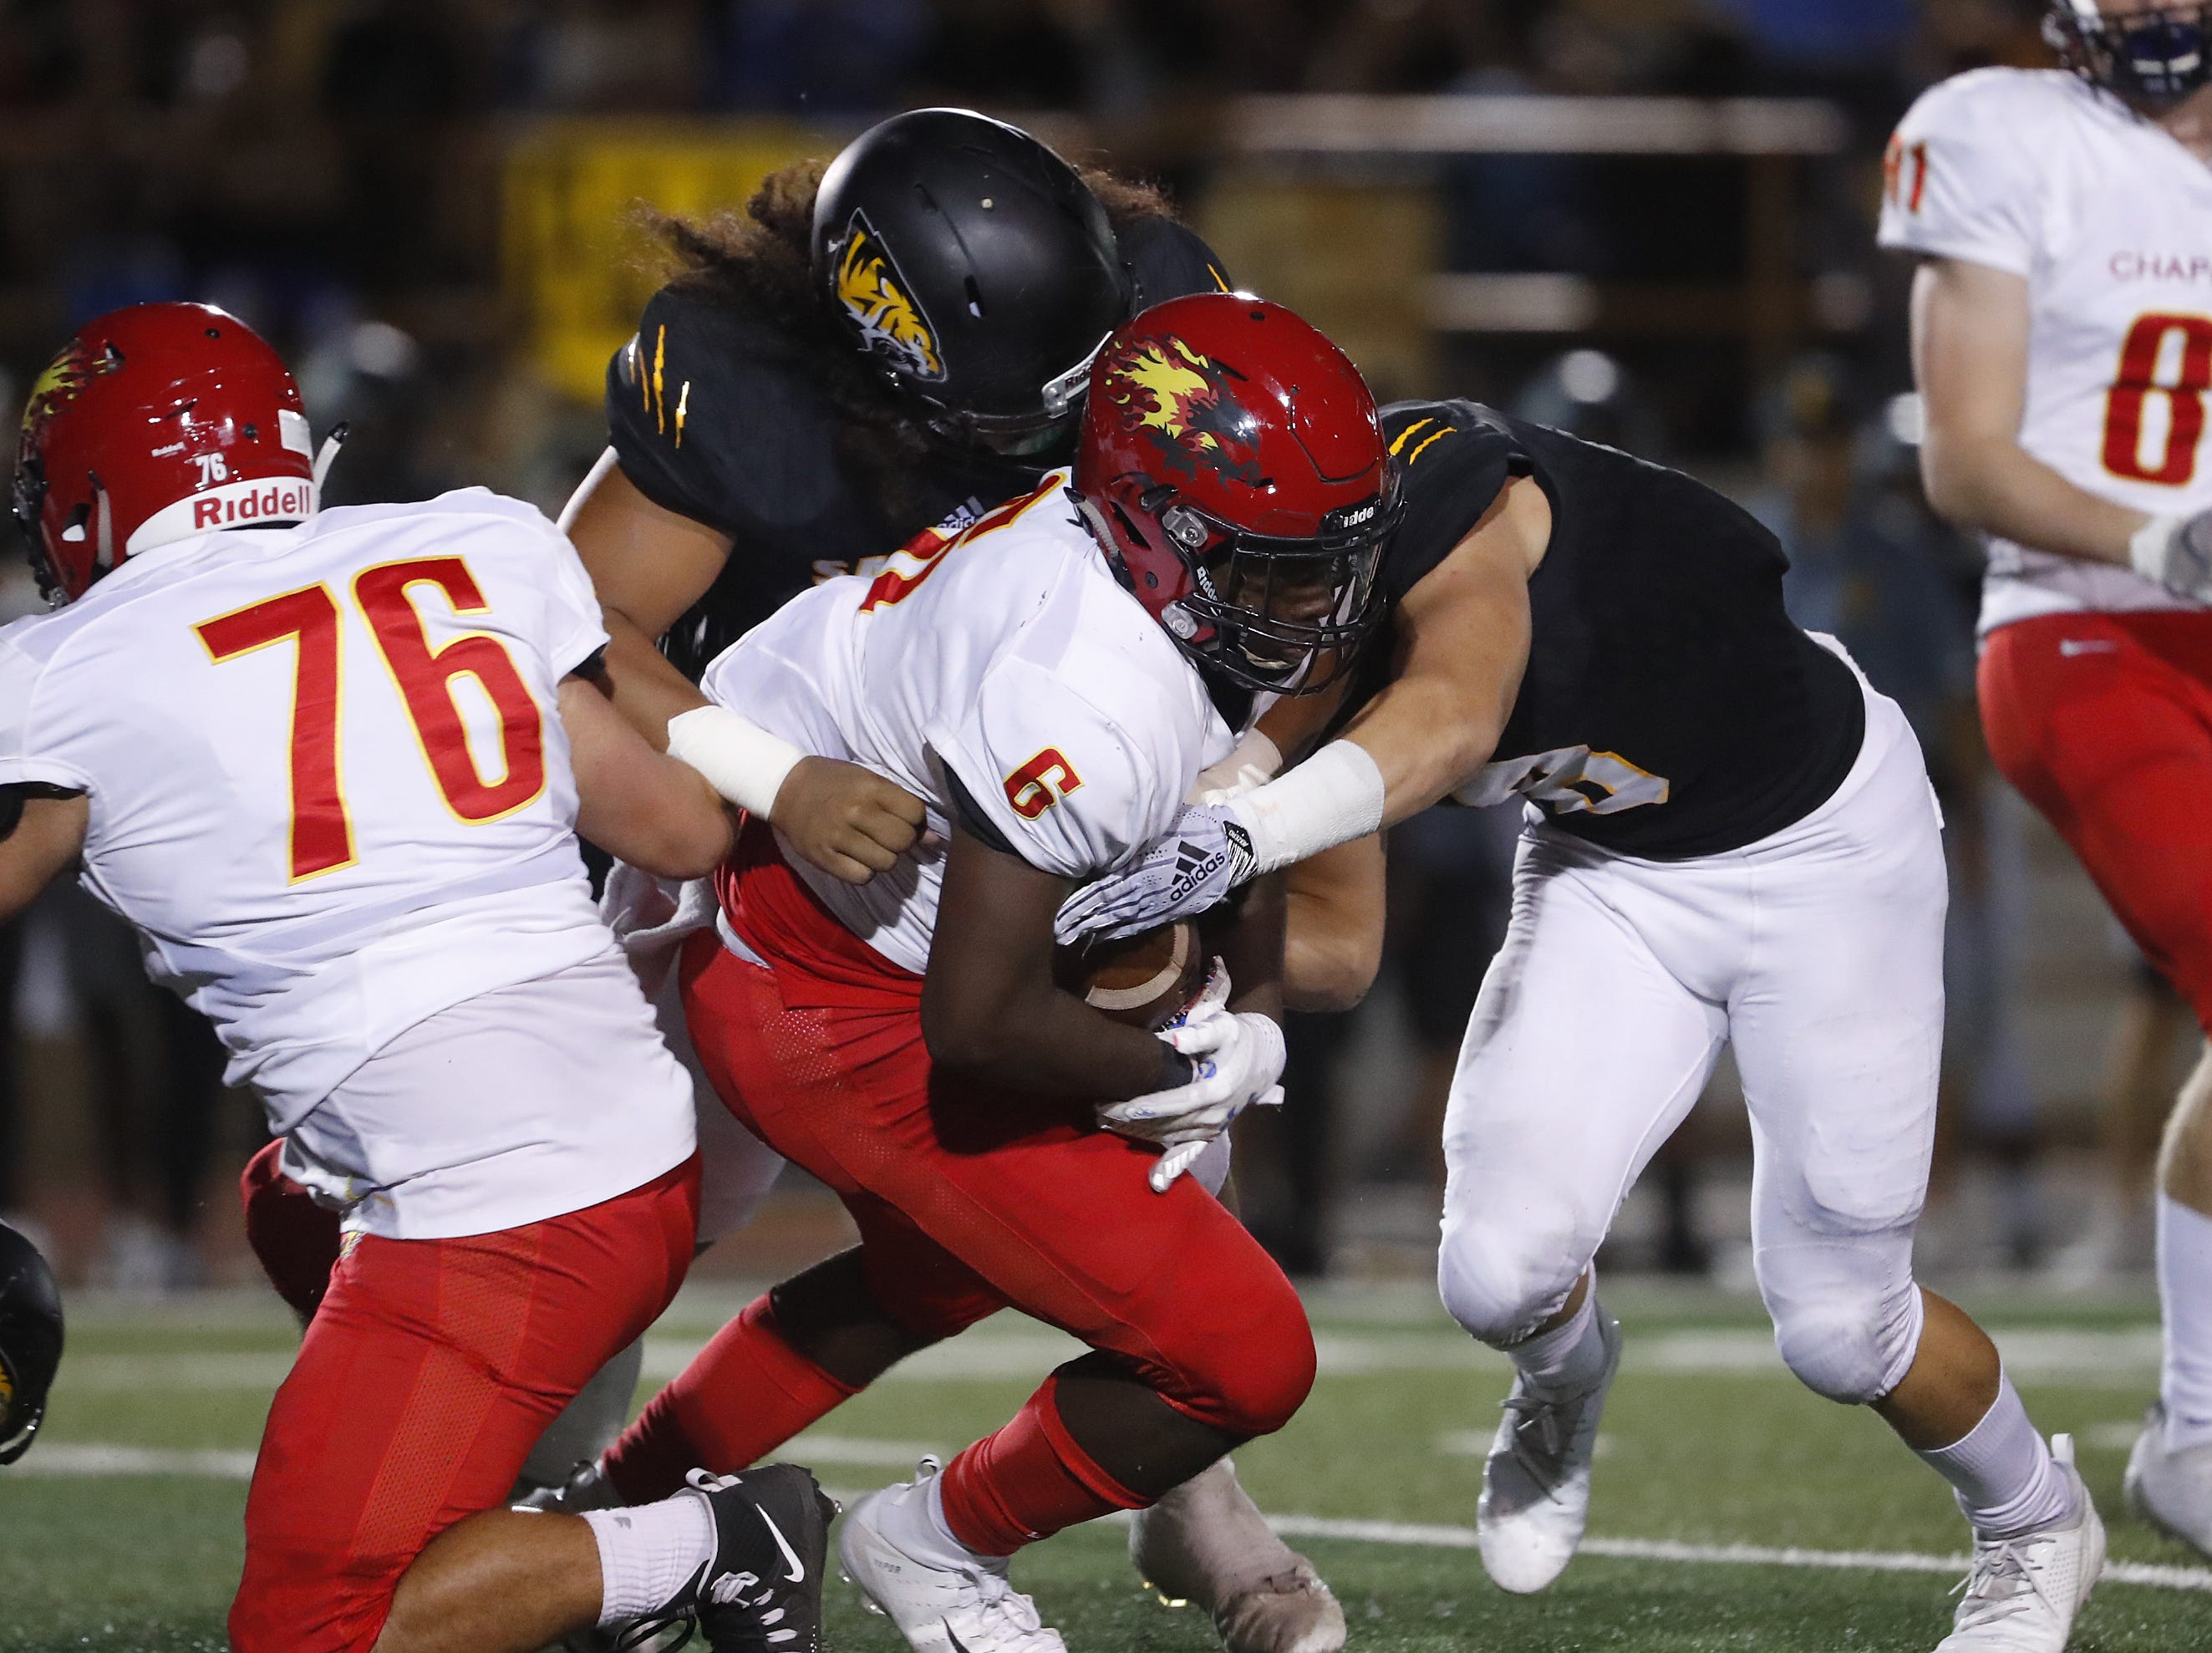 Saguaro tackles Chaparral's Darvon Hubbard (6) during the first half at Saguaro High School in Scottsdale, Ariz. on Sept. 14, 2018.